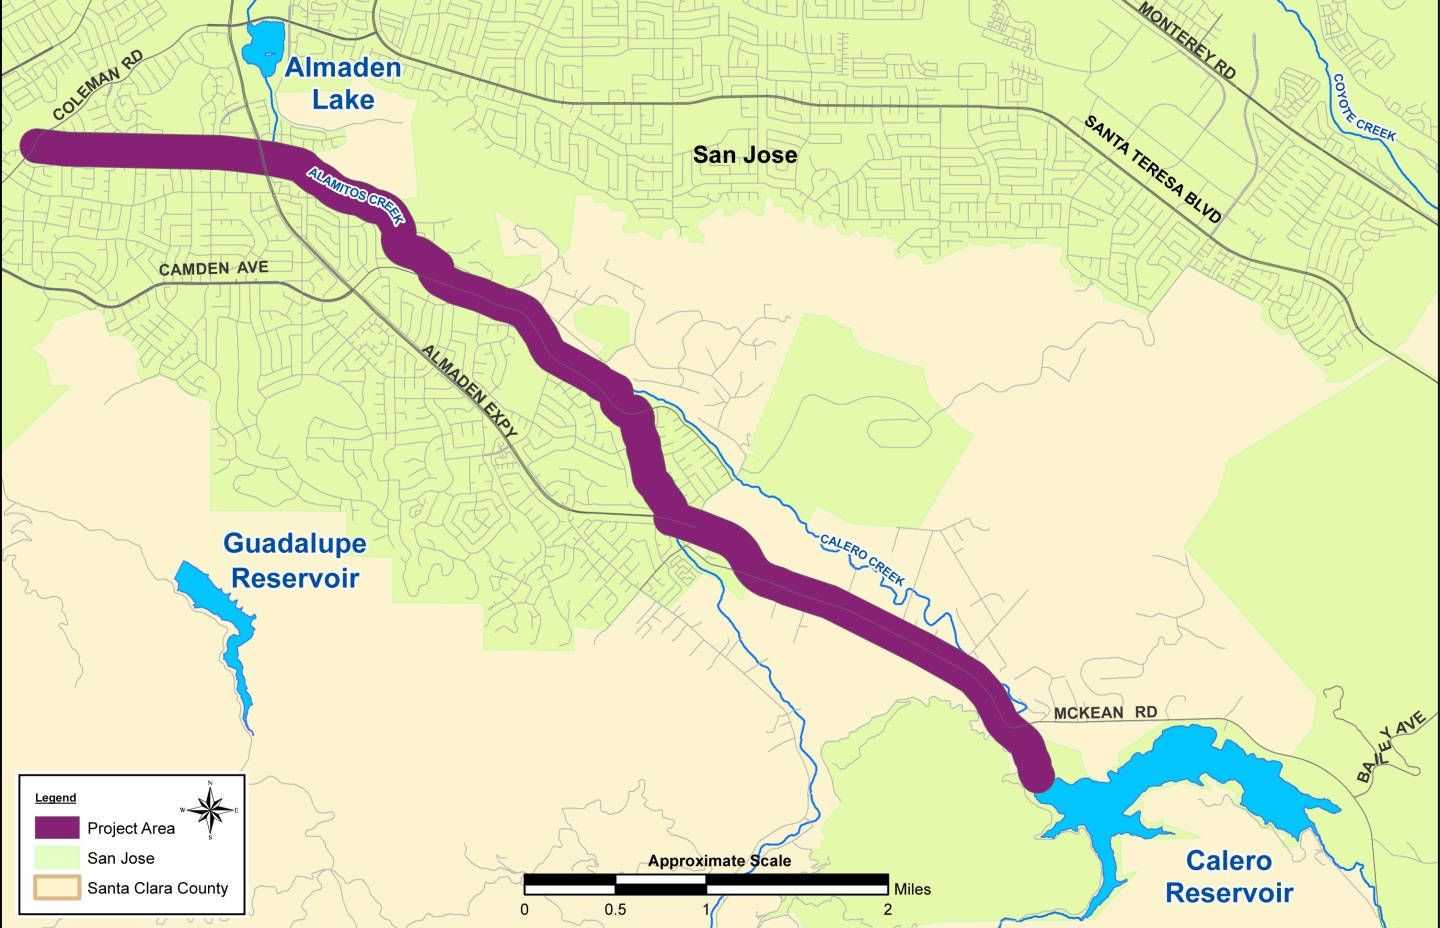 Map of Almaden Valley Pipeline from Calero Reservoir to Coleman Road